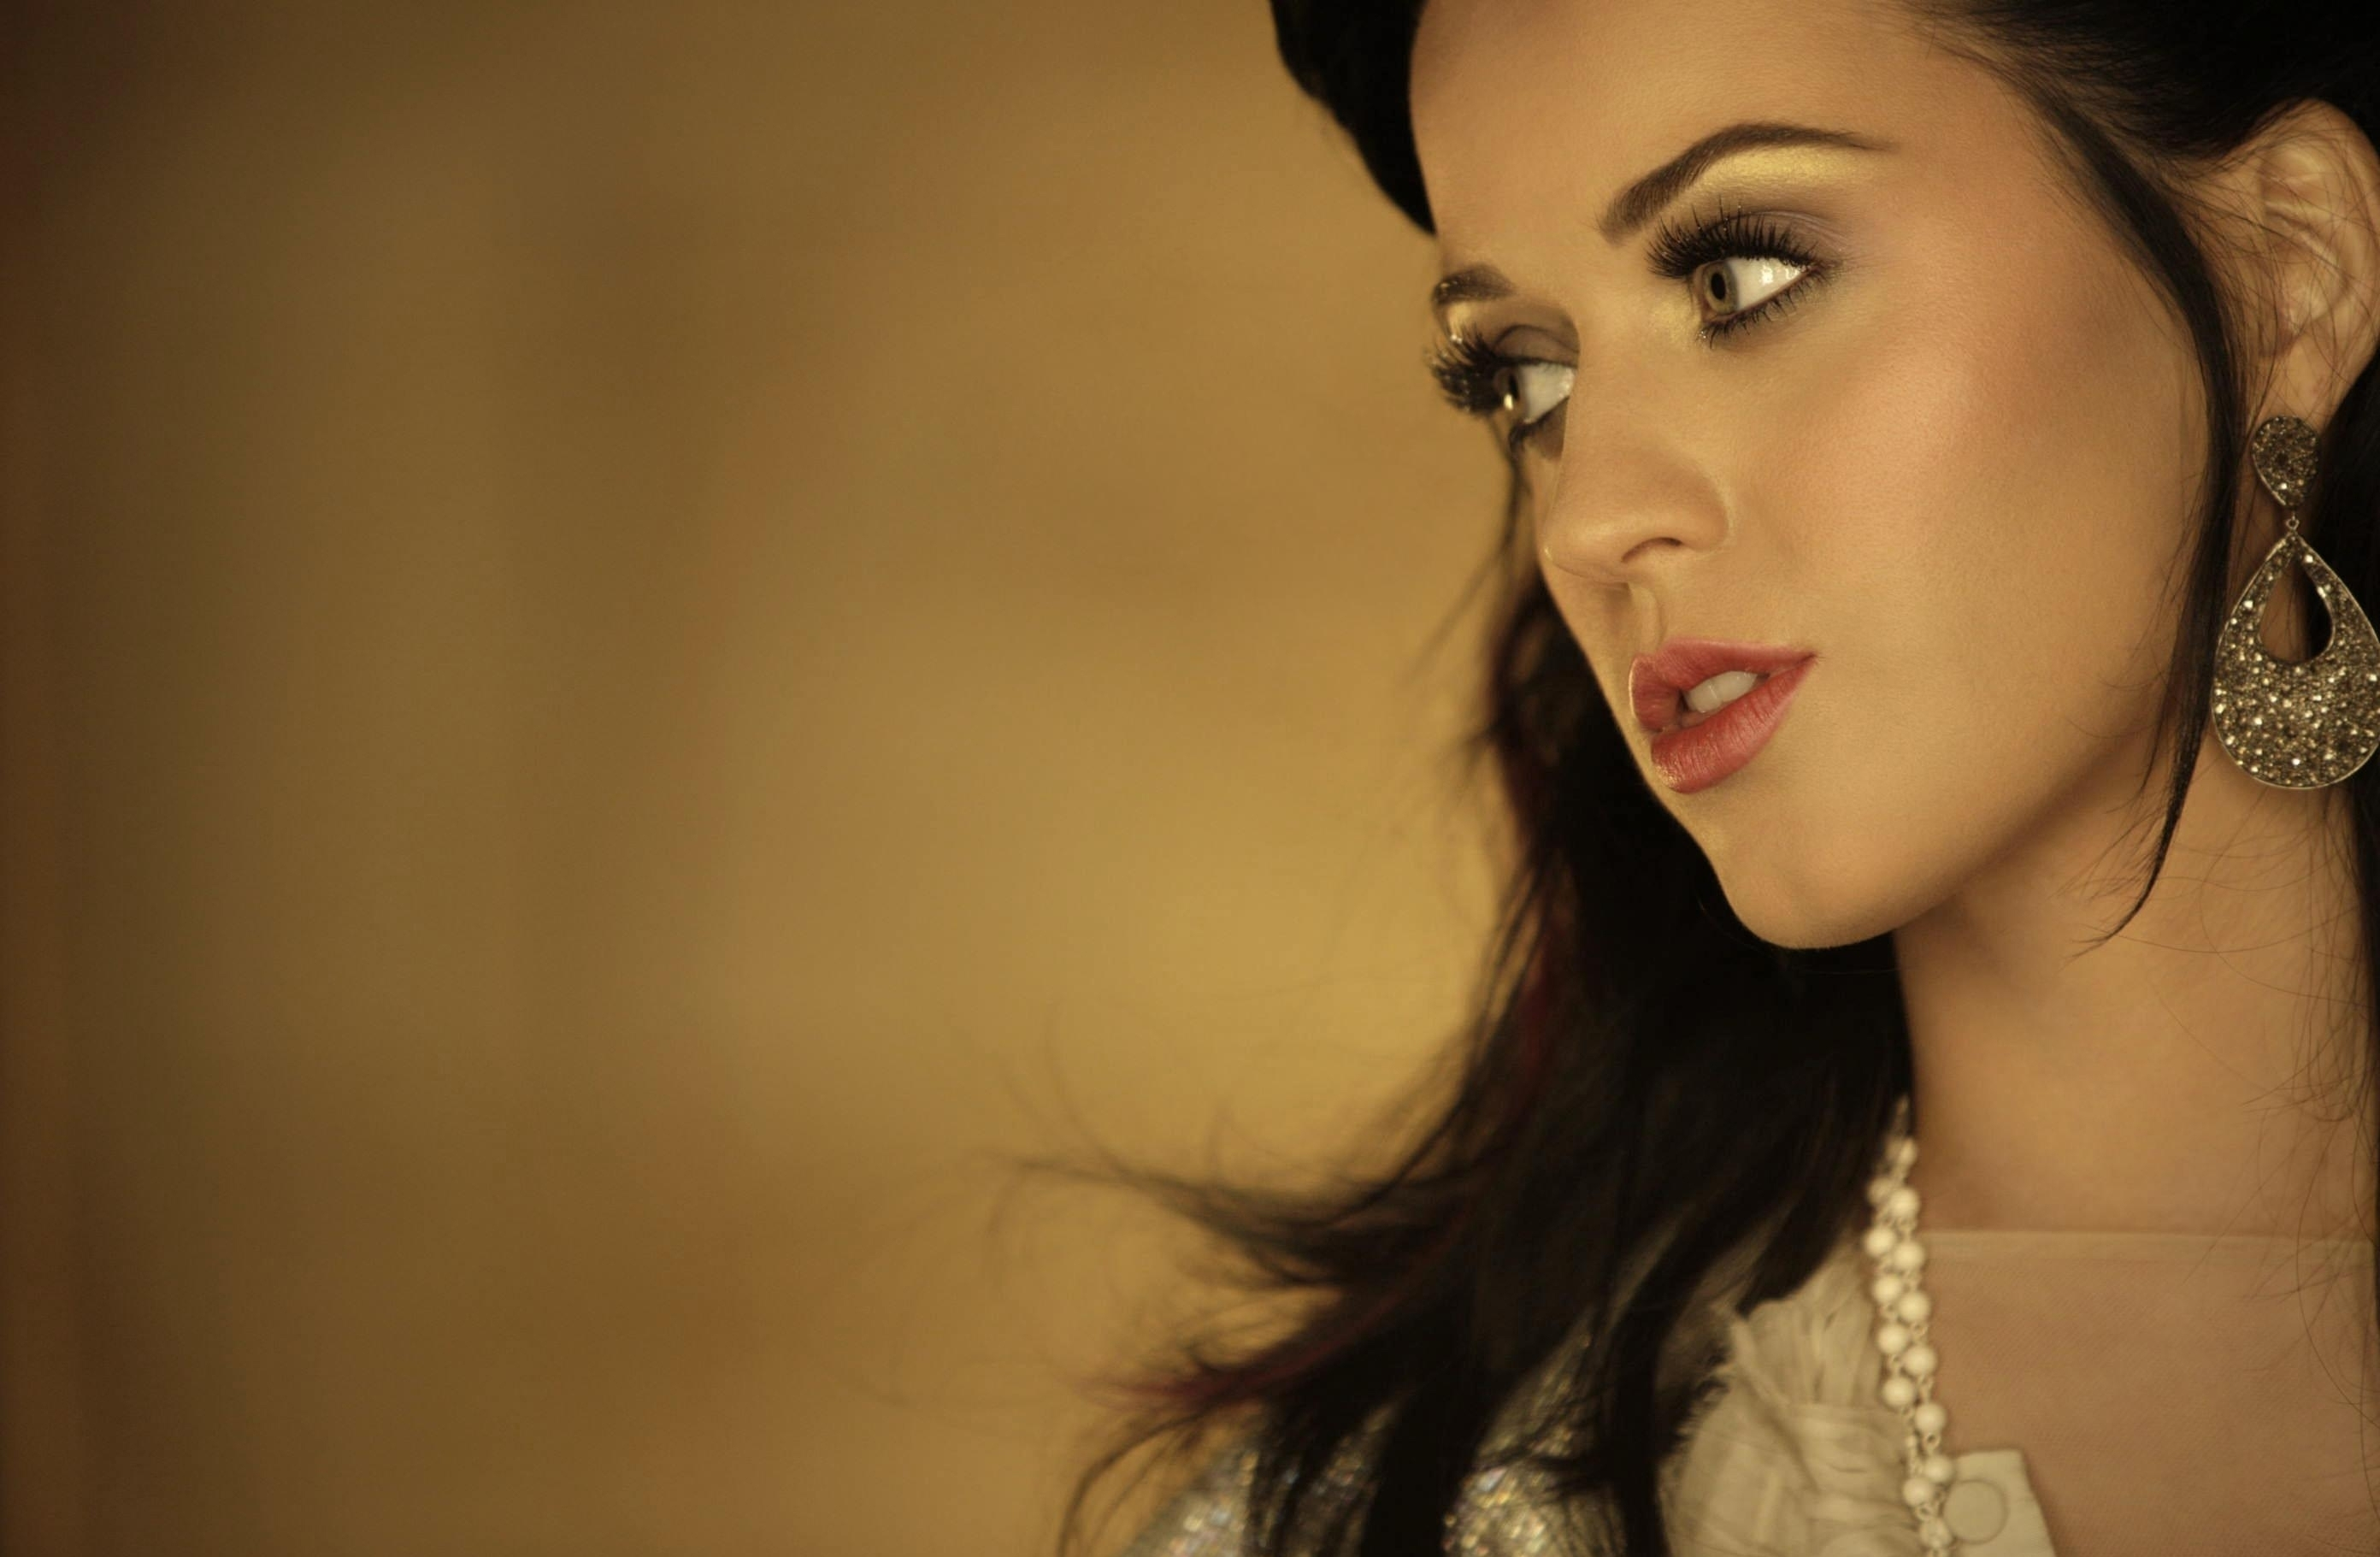 Katy Perry Wallpaper 10